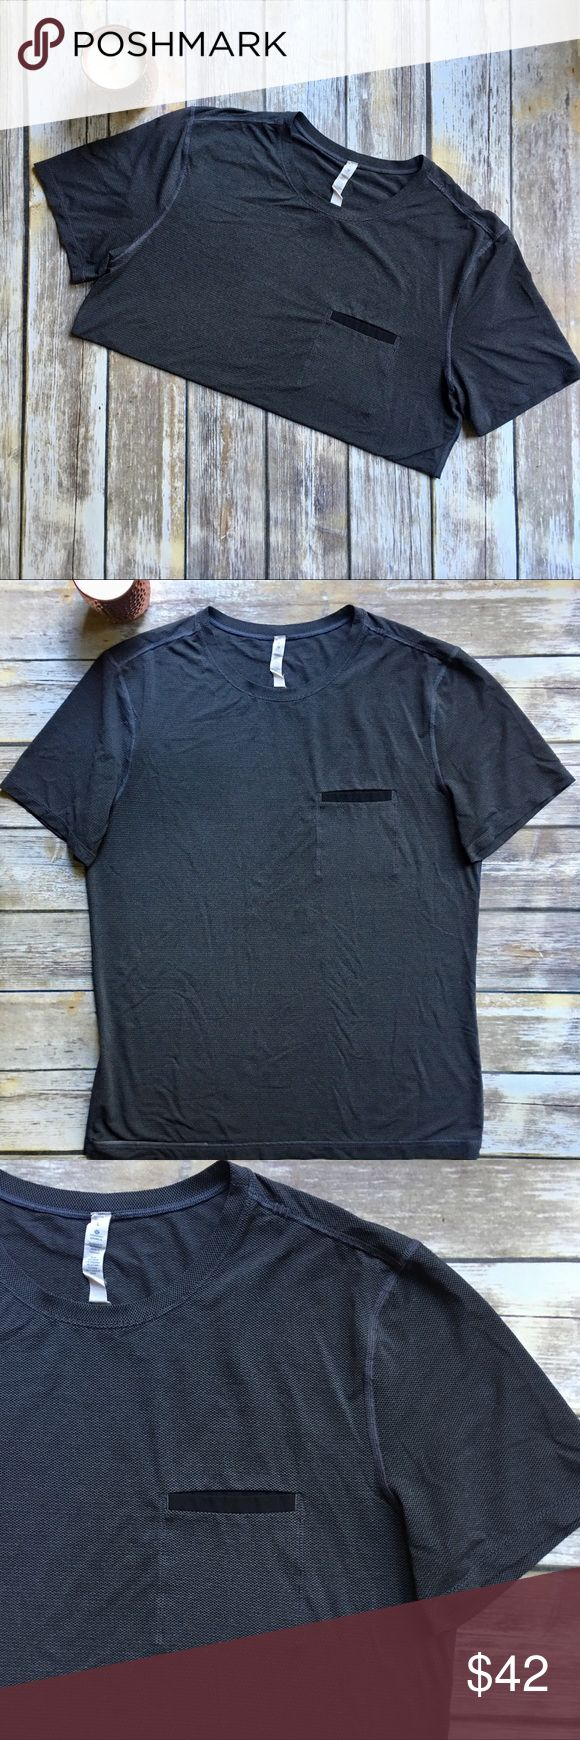 LULULEMON Men's Gray Athletic Shirt w/ Pocket - L LULULEMON Men's Gray Athletic Shirt w/ Pocket - Large. Excellent used condition. No issues. Smoke free home. lululemon athletica Shirts Tees - Short Sleeve